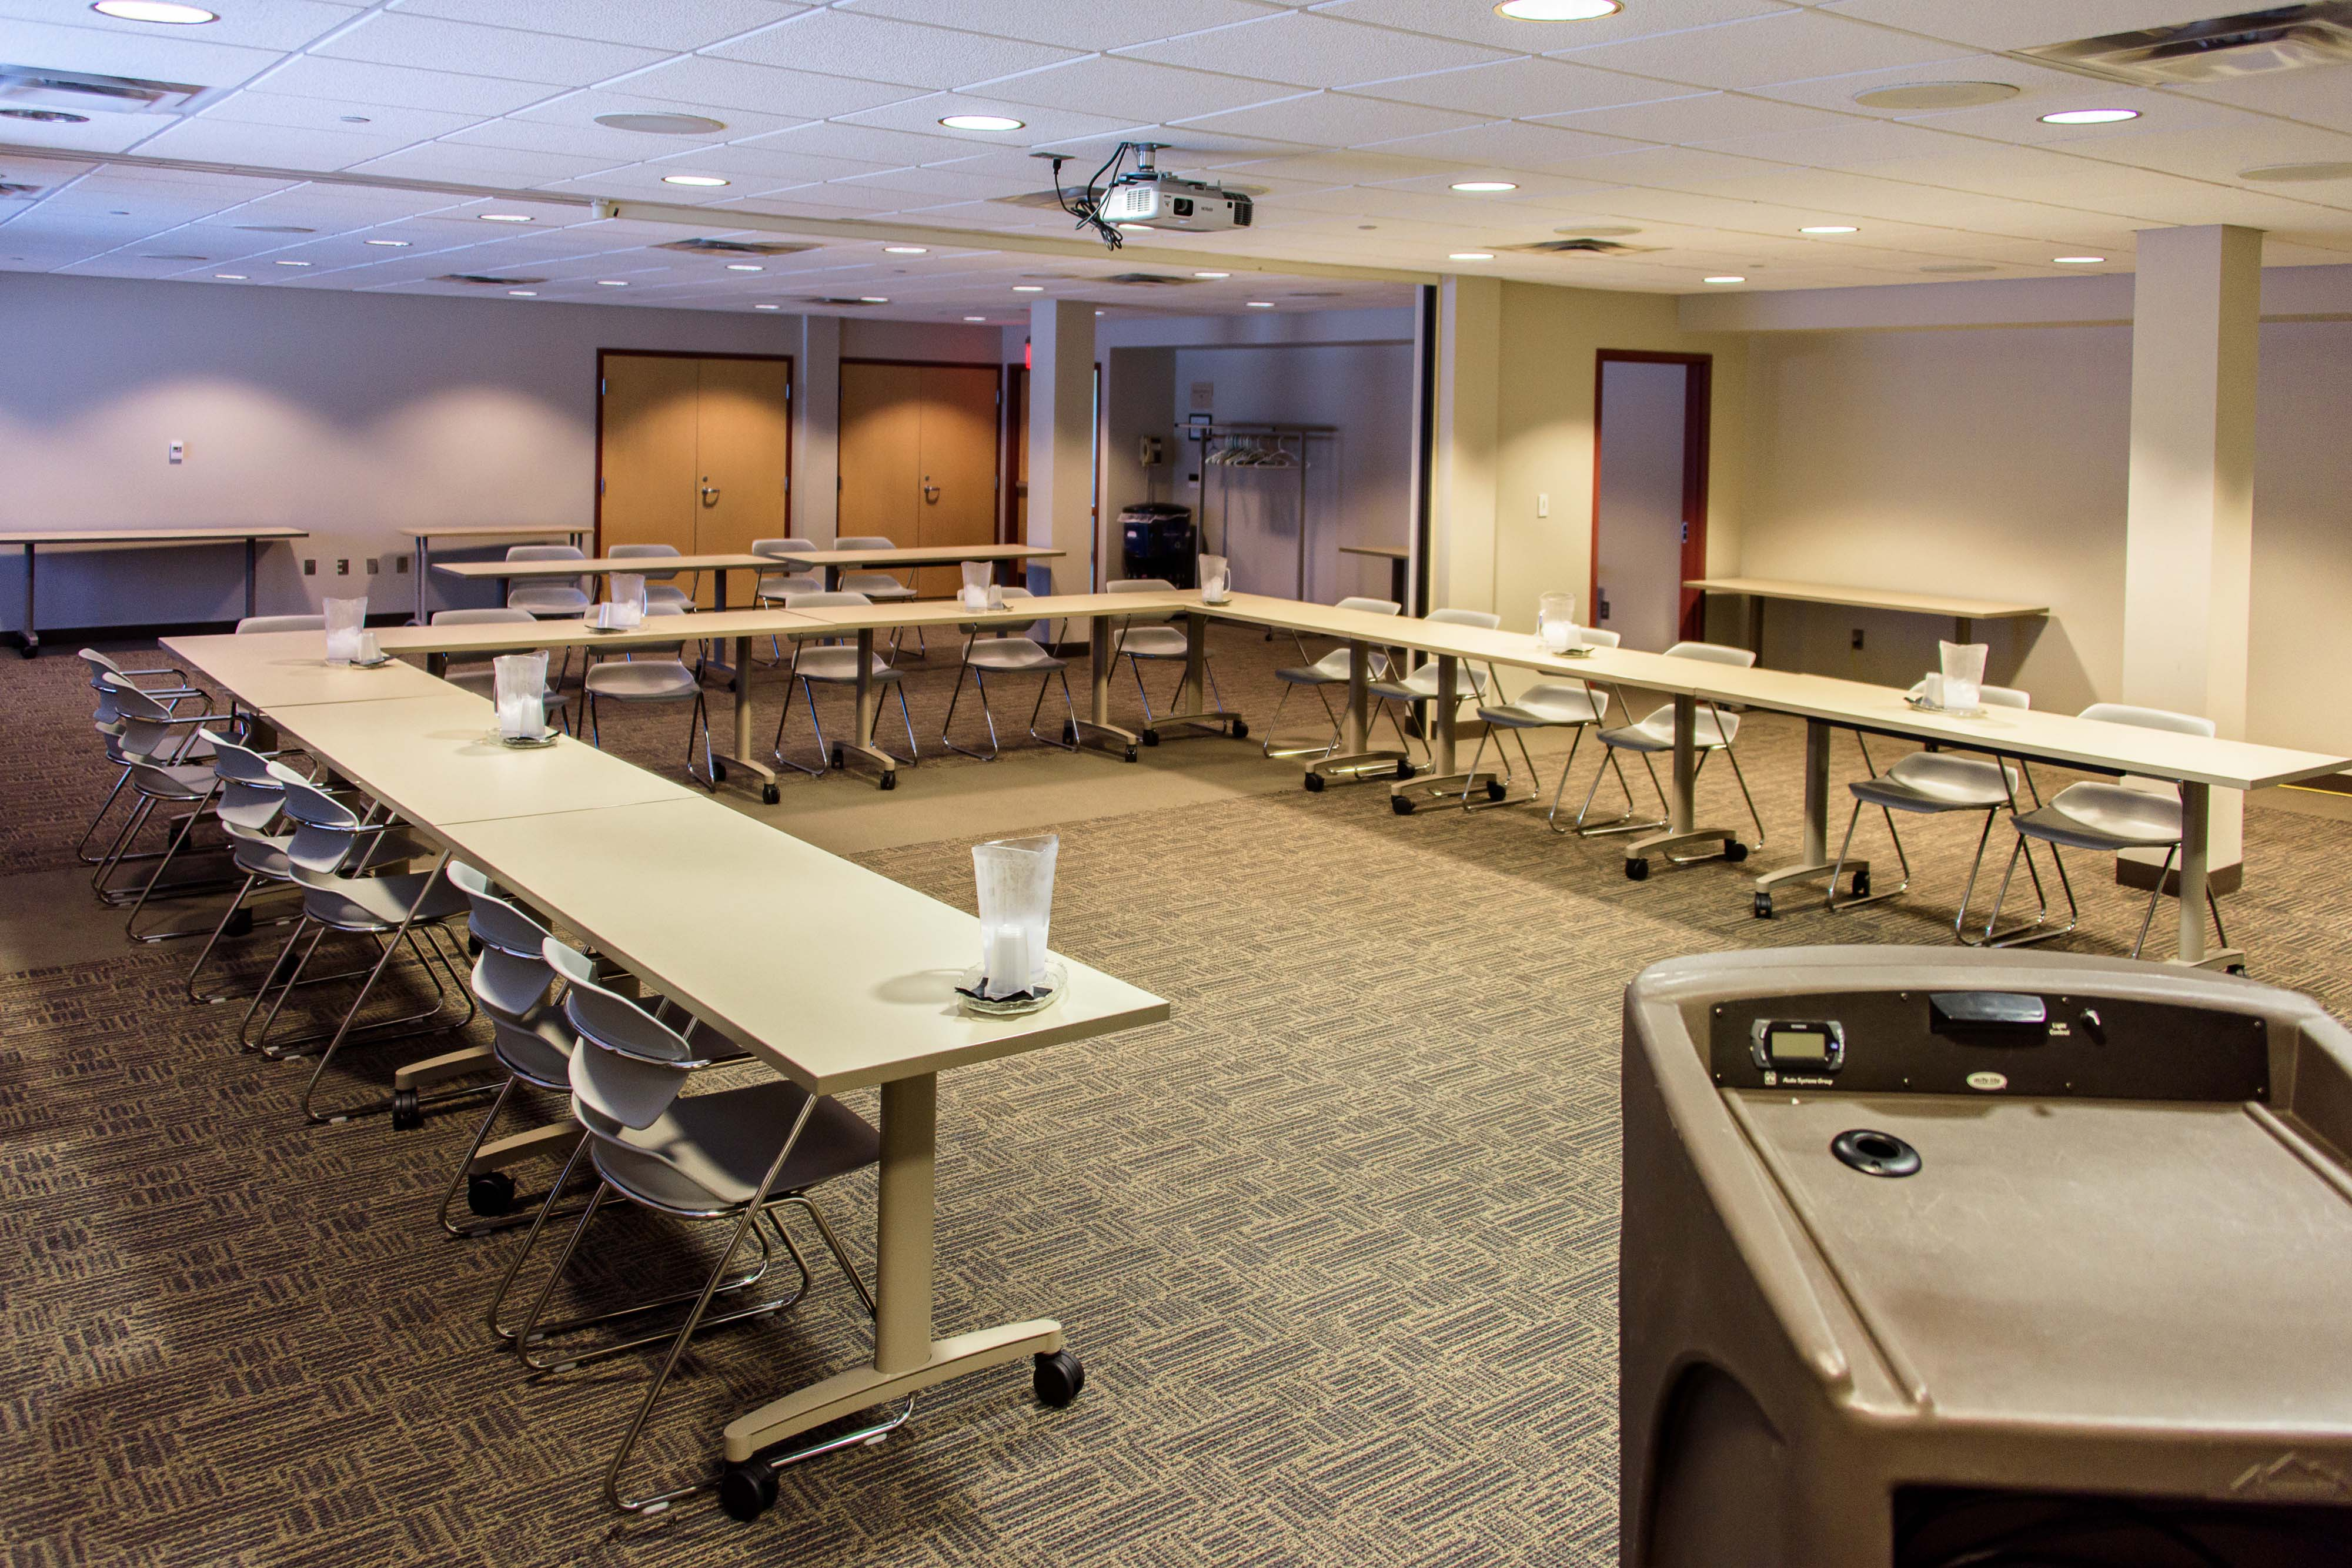 A view of the tables and seating in the Shawnee-Porter Care Conference Room from behind a podium